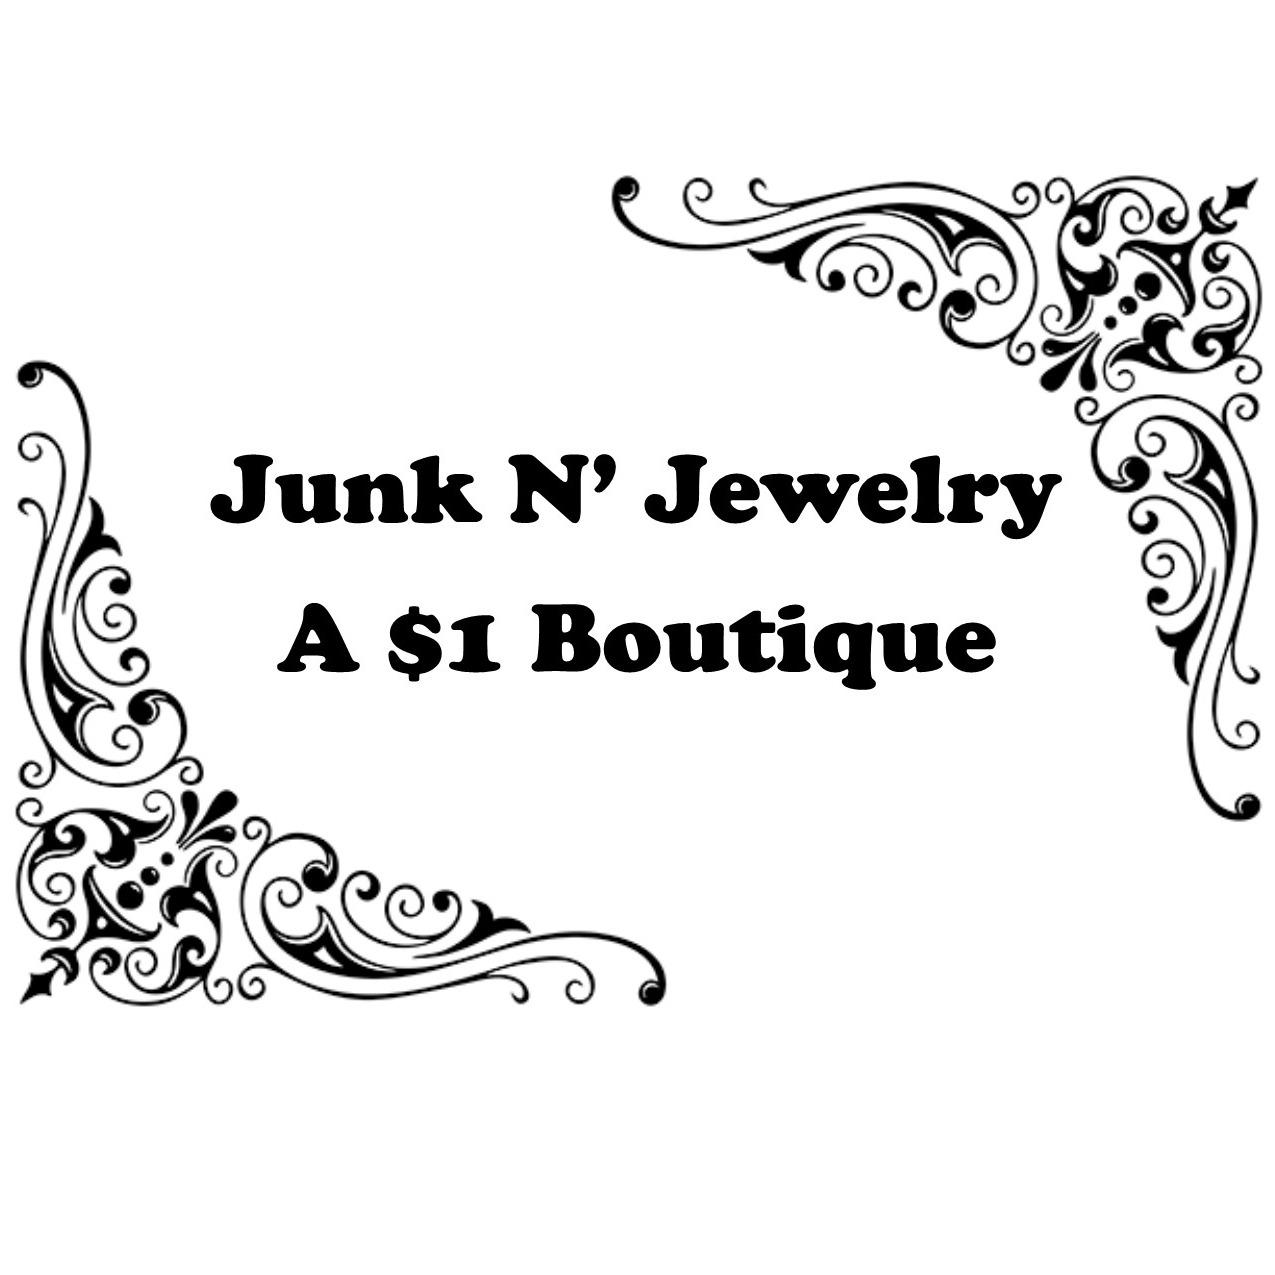 Junk N' Jewelry, A $1 Boutique